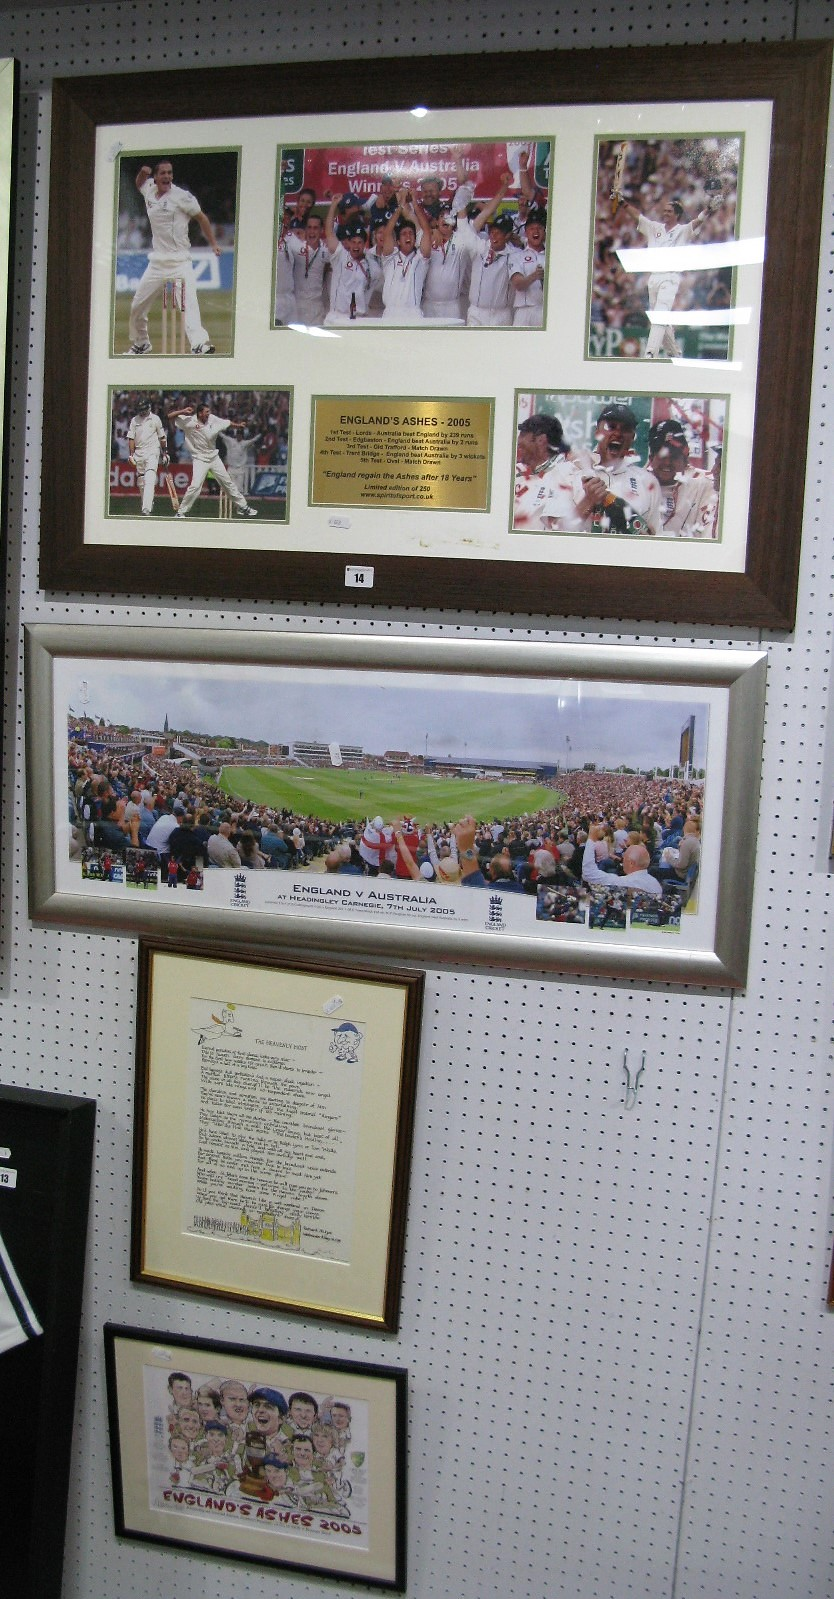 Lot 14 - Cricket 'England's Ashes 2005' Montage, featuring celebrations. Headingley test print, Norman Hood